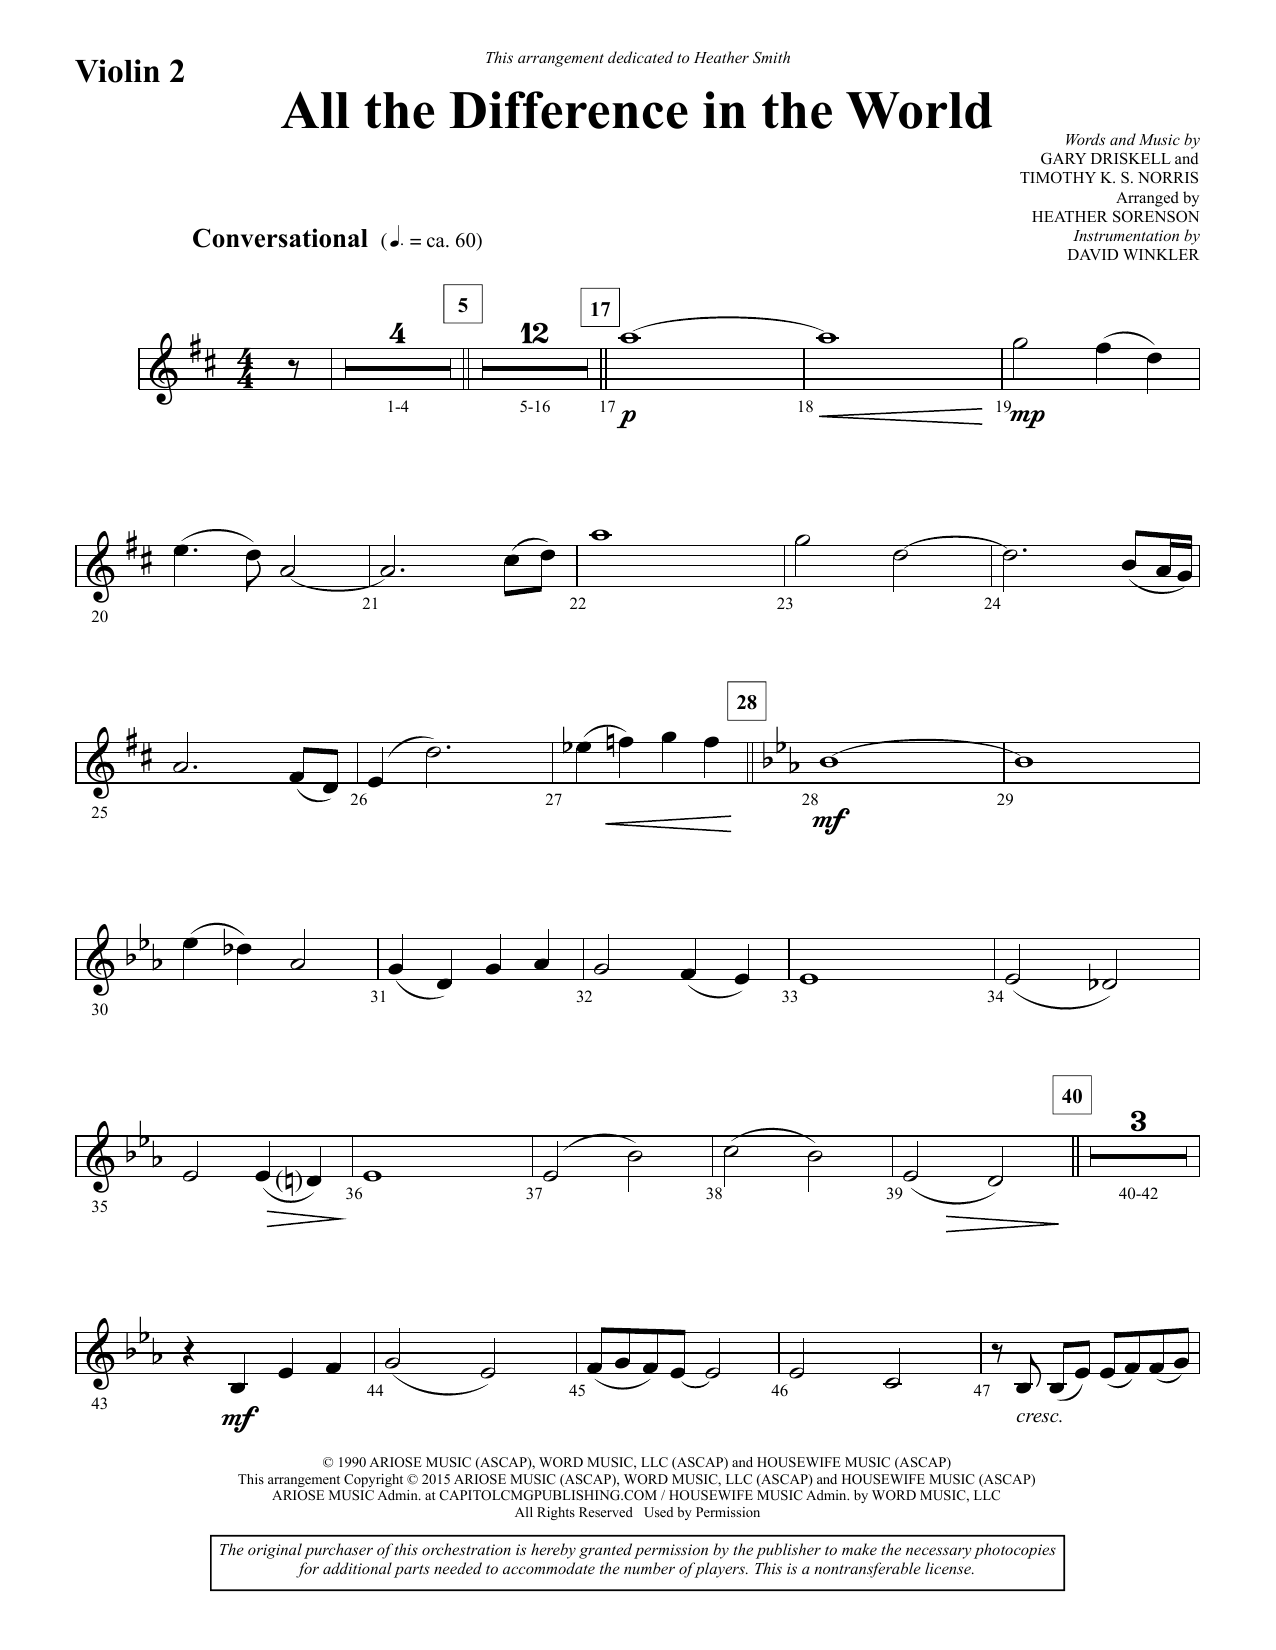 All the Difference in the World - Violin 2 sheet music